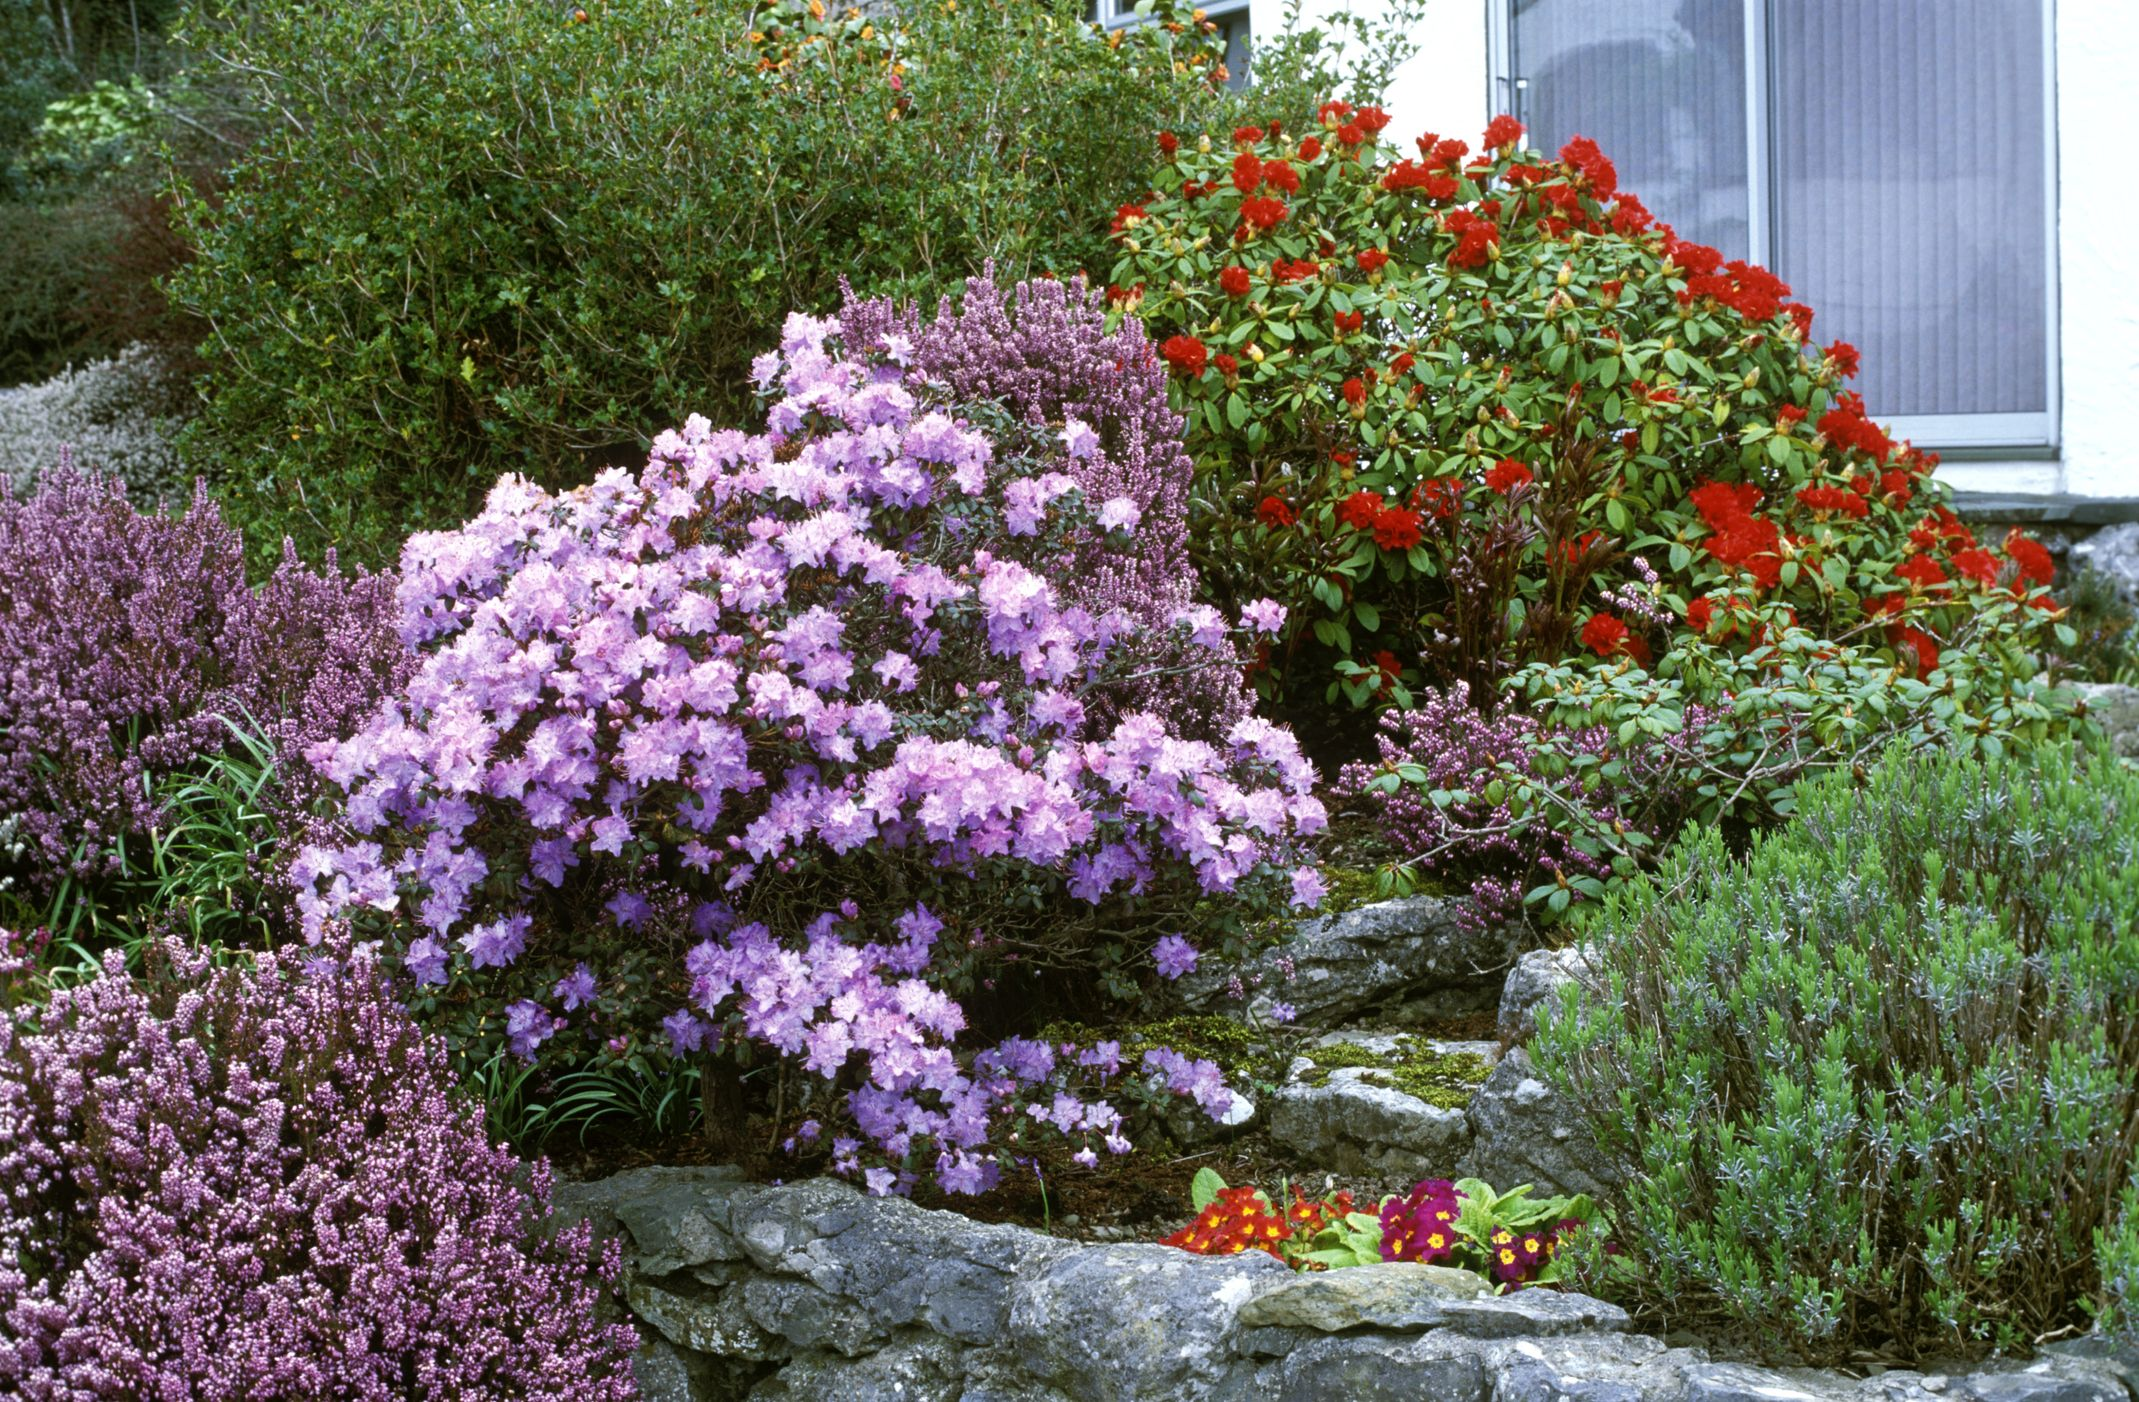 20 Best Flowering Shrubs for a Garden Bursting With Blooms